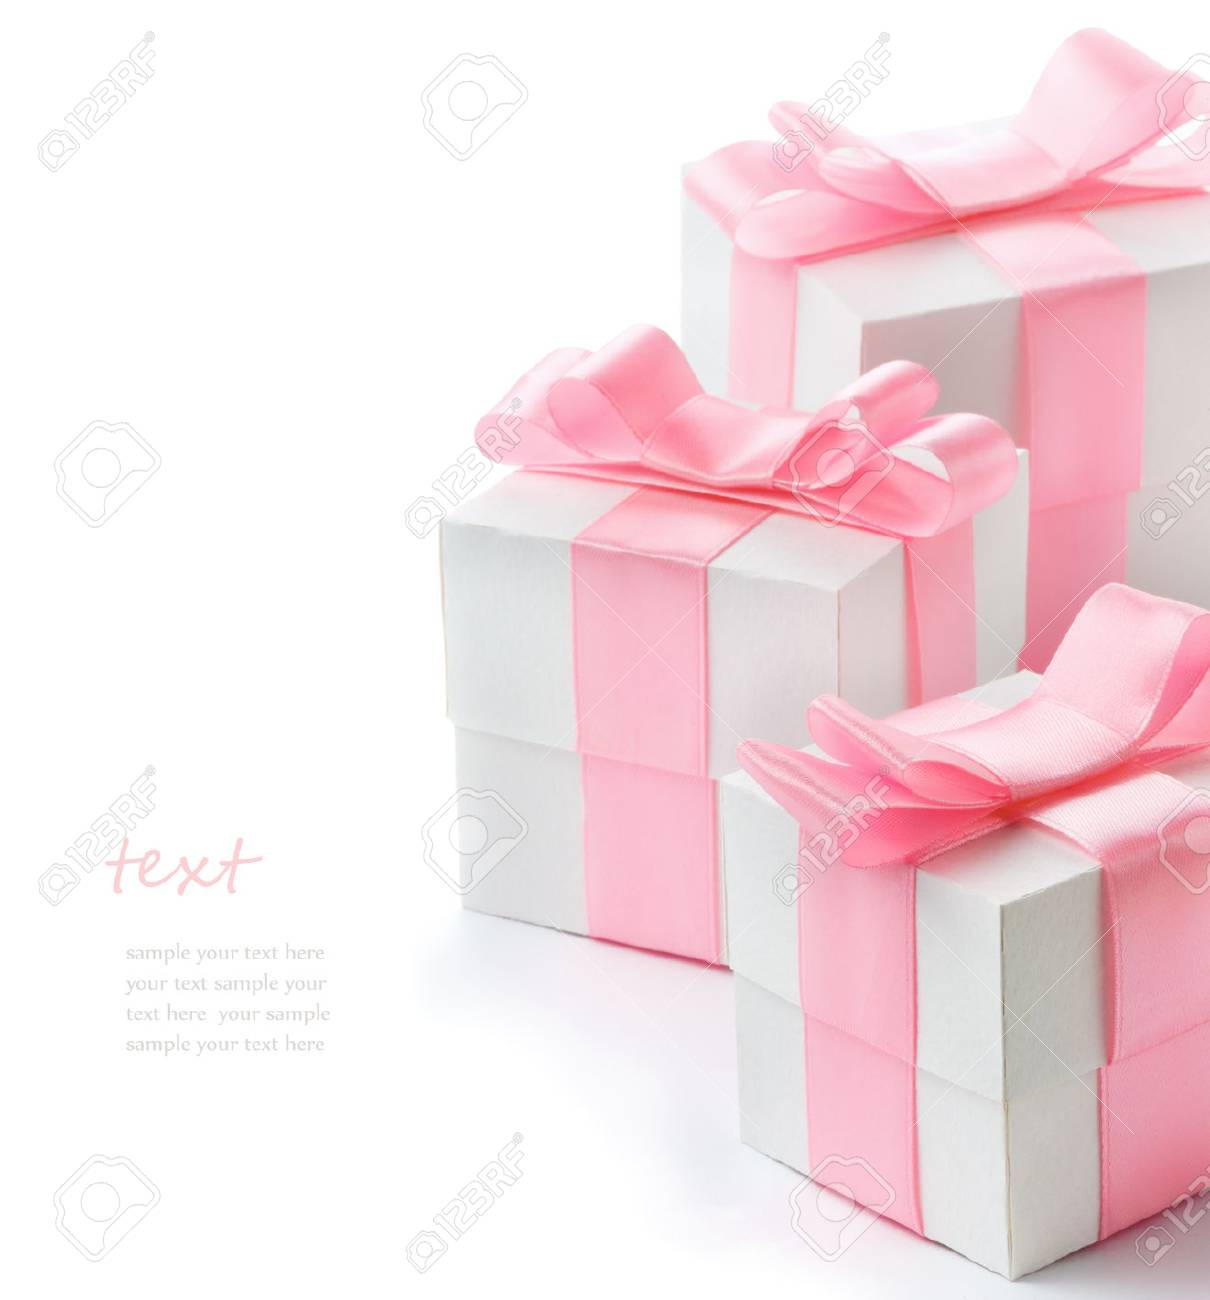 Gift white box with pink satin ribbon isolated on white background, congratulations on Women's Day, mum's day, Valentine's day, happy birthday - 53110195